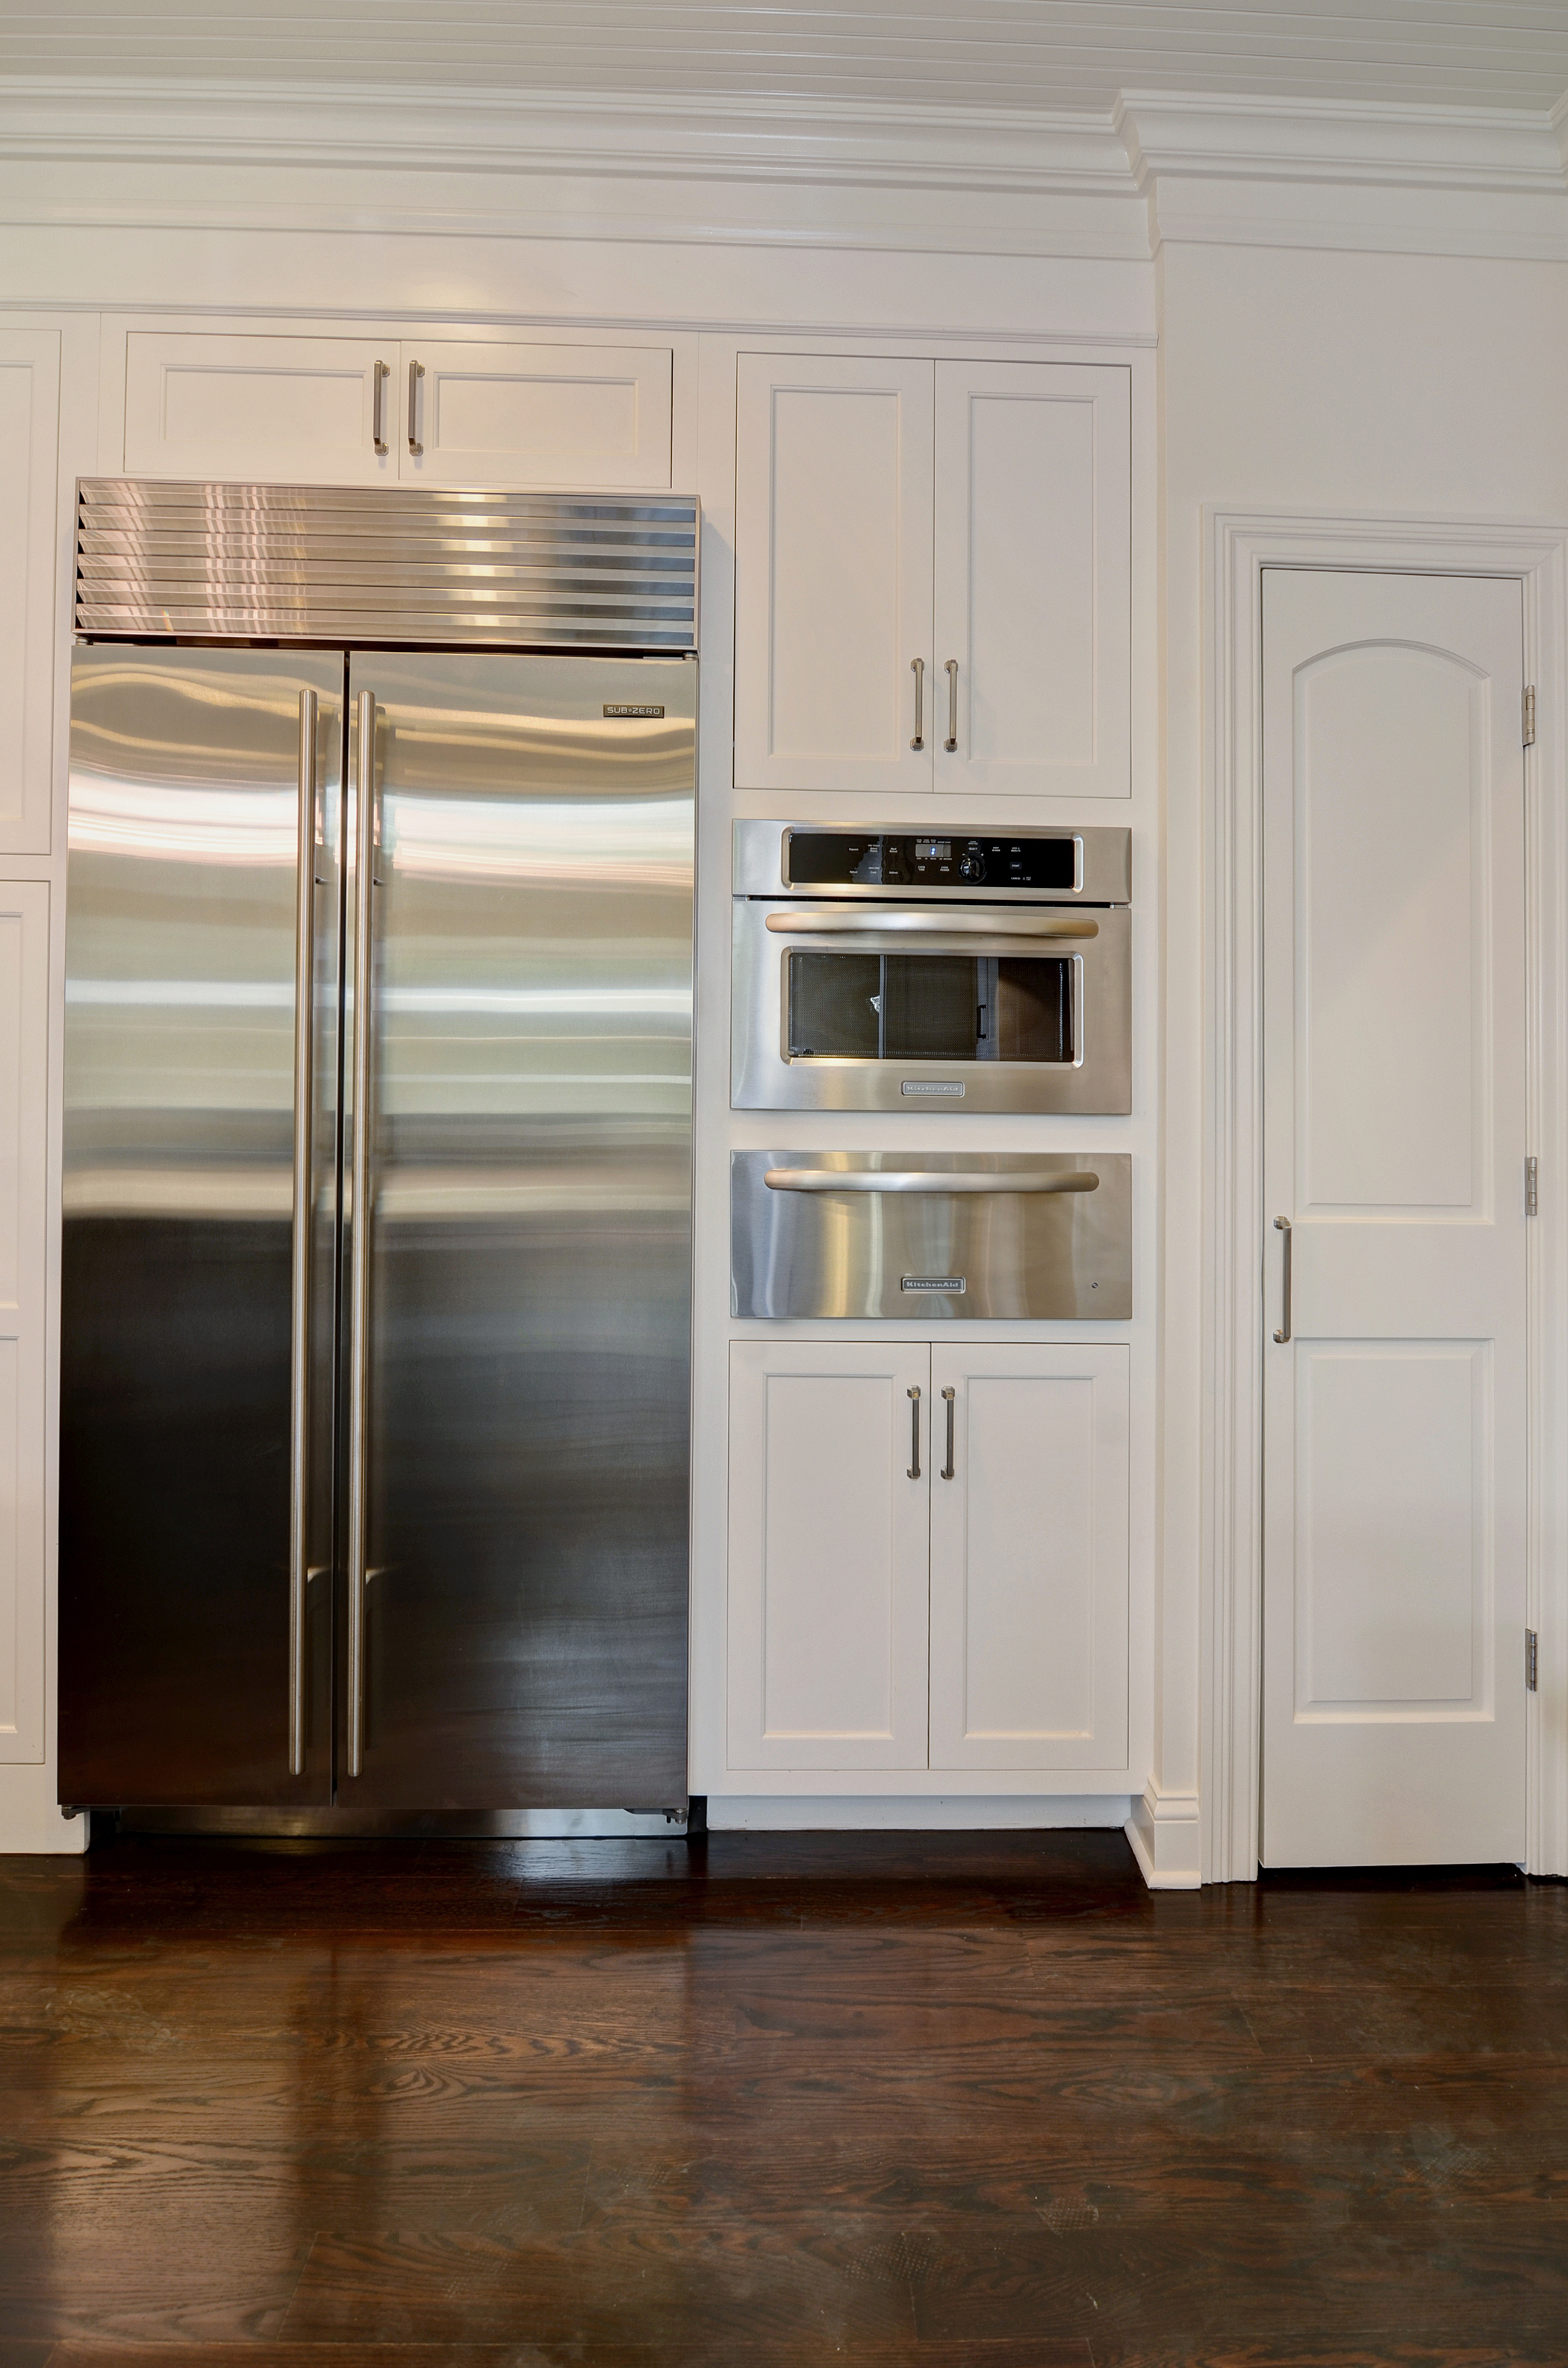 Rite-Way Kitchen Refrigerator, Built-In Microwave, and Warming Drawer